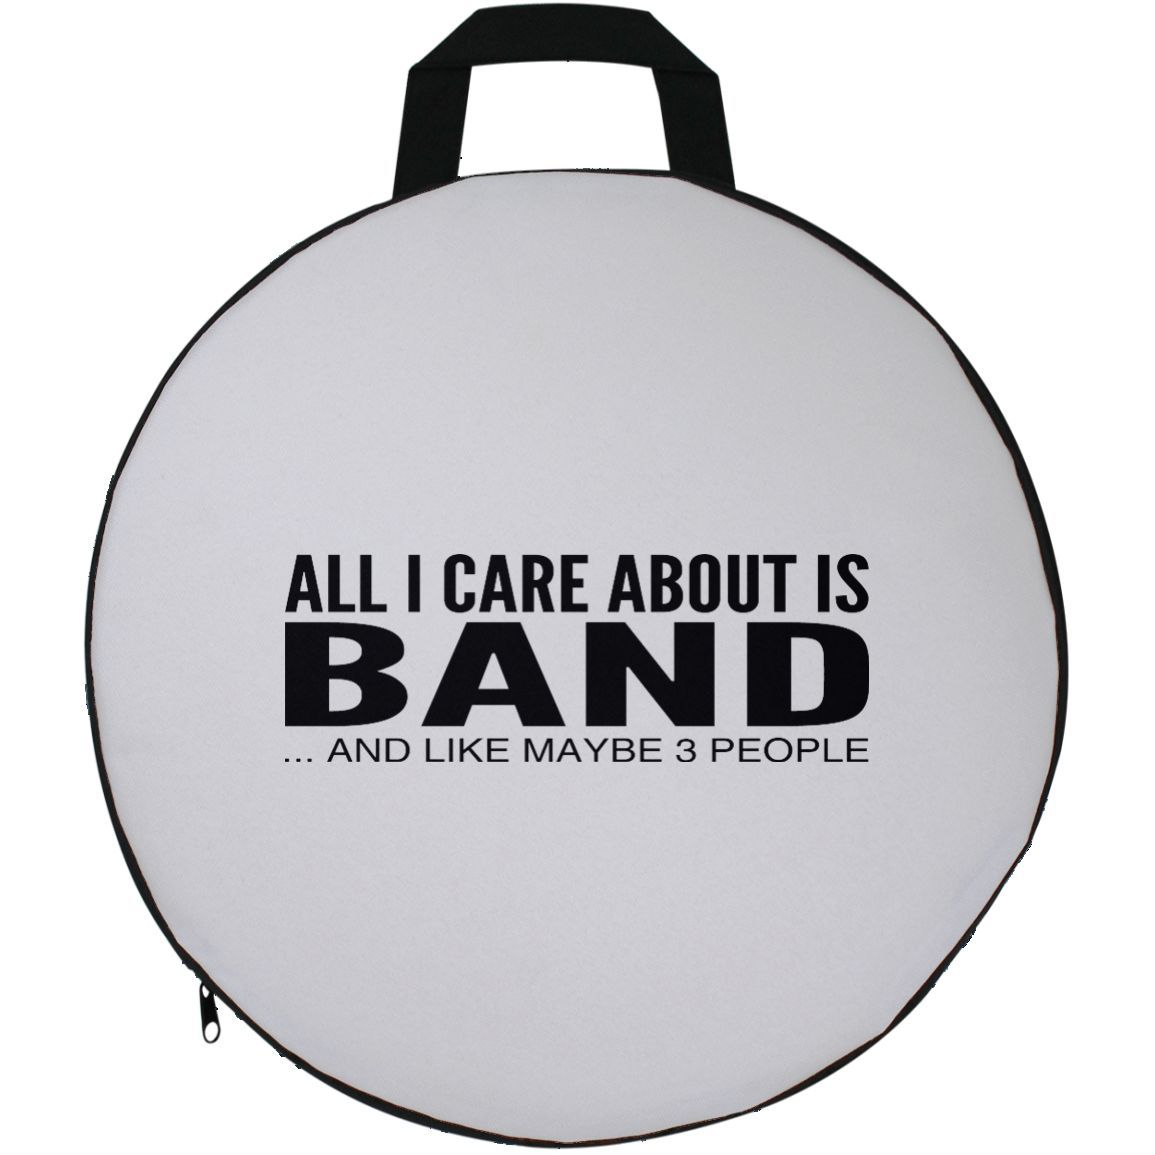 All i care about is band and like maybe people round seat cushion